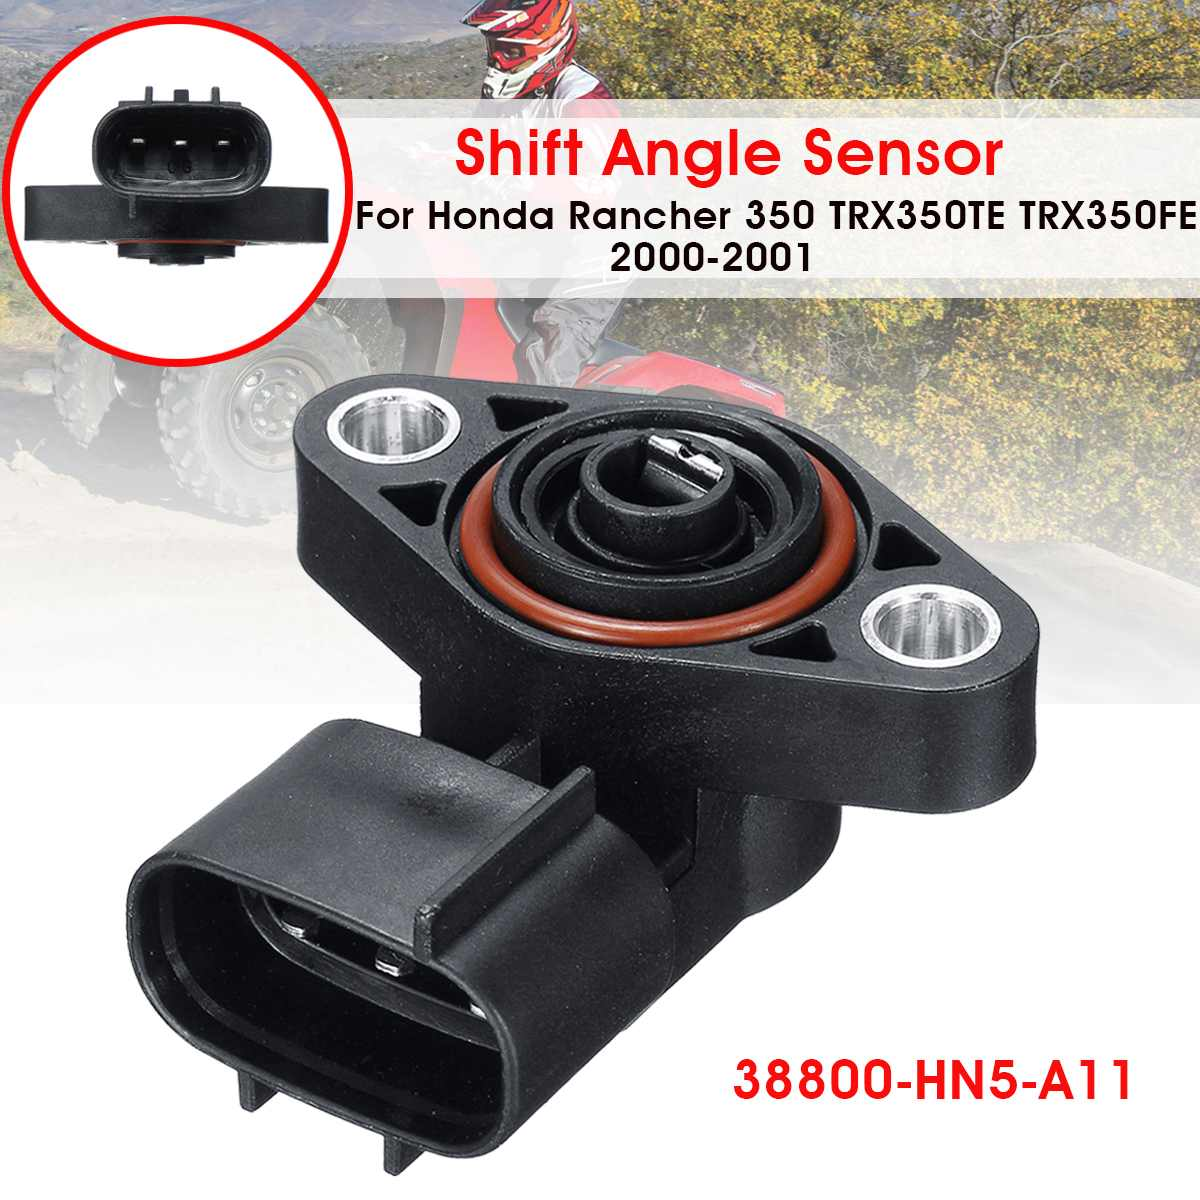 Car Shift Angle Sensor O Ring For Honda Rancher 350 TRX350FE 4x4 TRX350TE 2x4 ES 2000 2001Car Shift Angle Sensor O Ring For Honda Rancher 350 TRX350FE 4x4 TRX350TE 2x4 ES 2000 2001